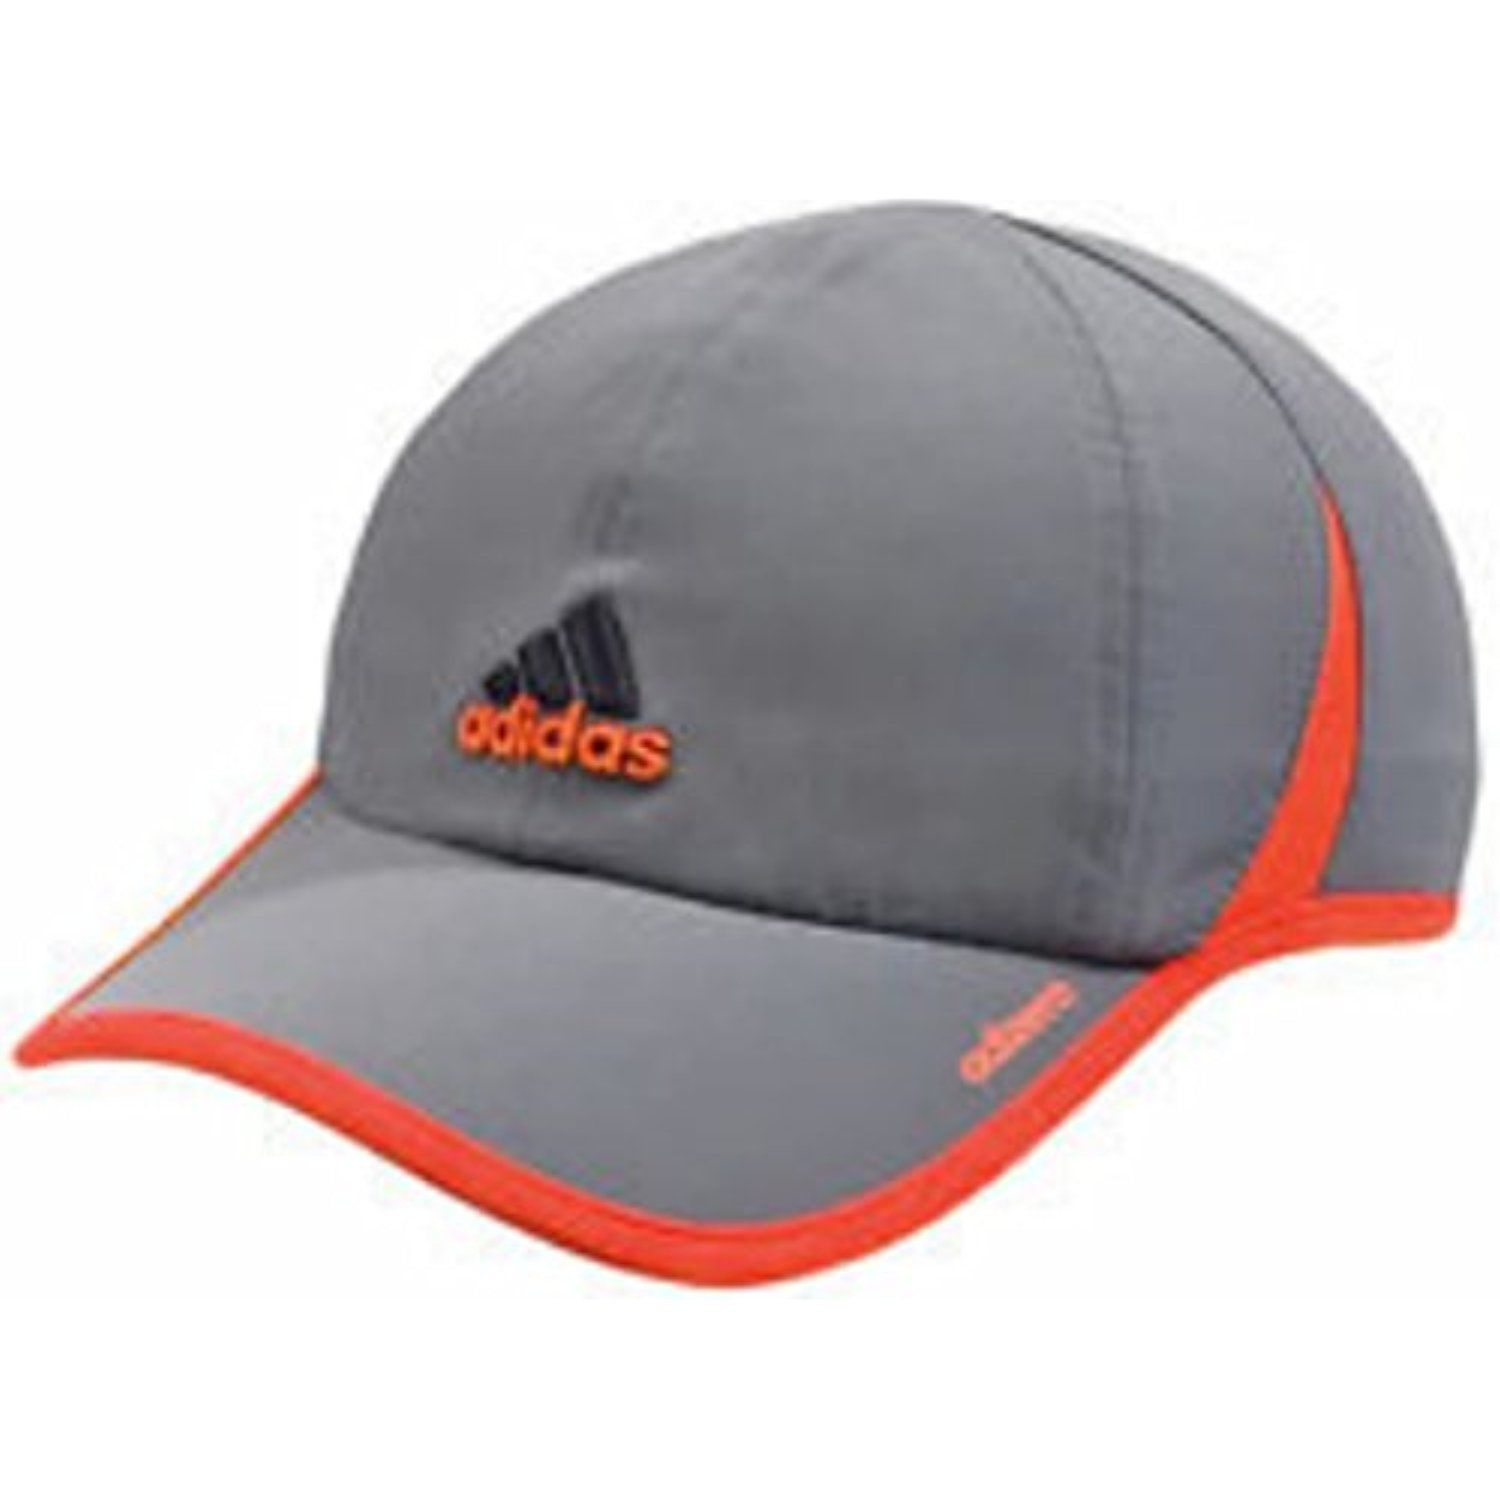 6fef1d6c023 adidas Adizero II Stretch Cap (Tech Grey High Res Red) Running Sports  Fitness Hat   Click image for more details. (This is an affiliate link)   Accessories